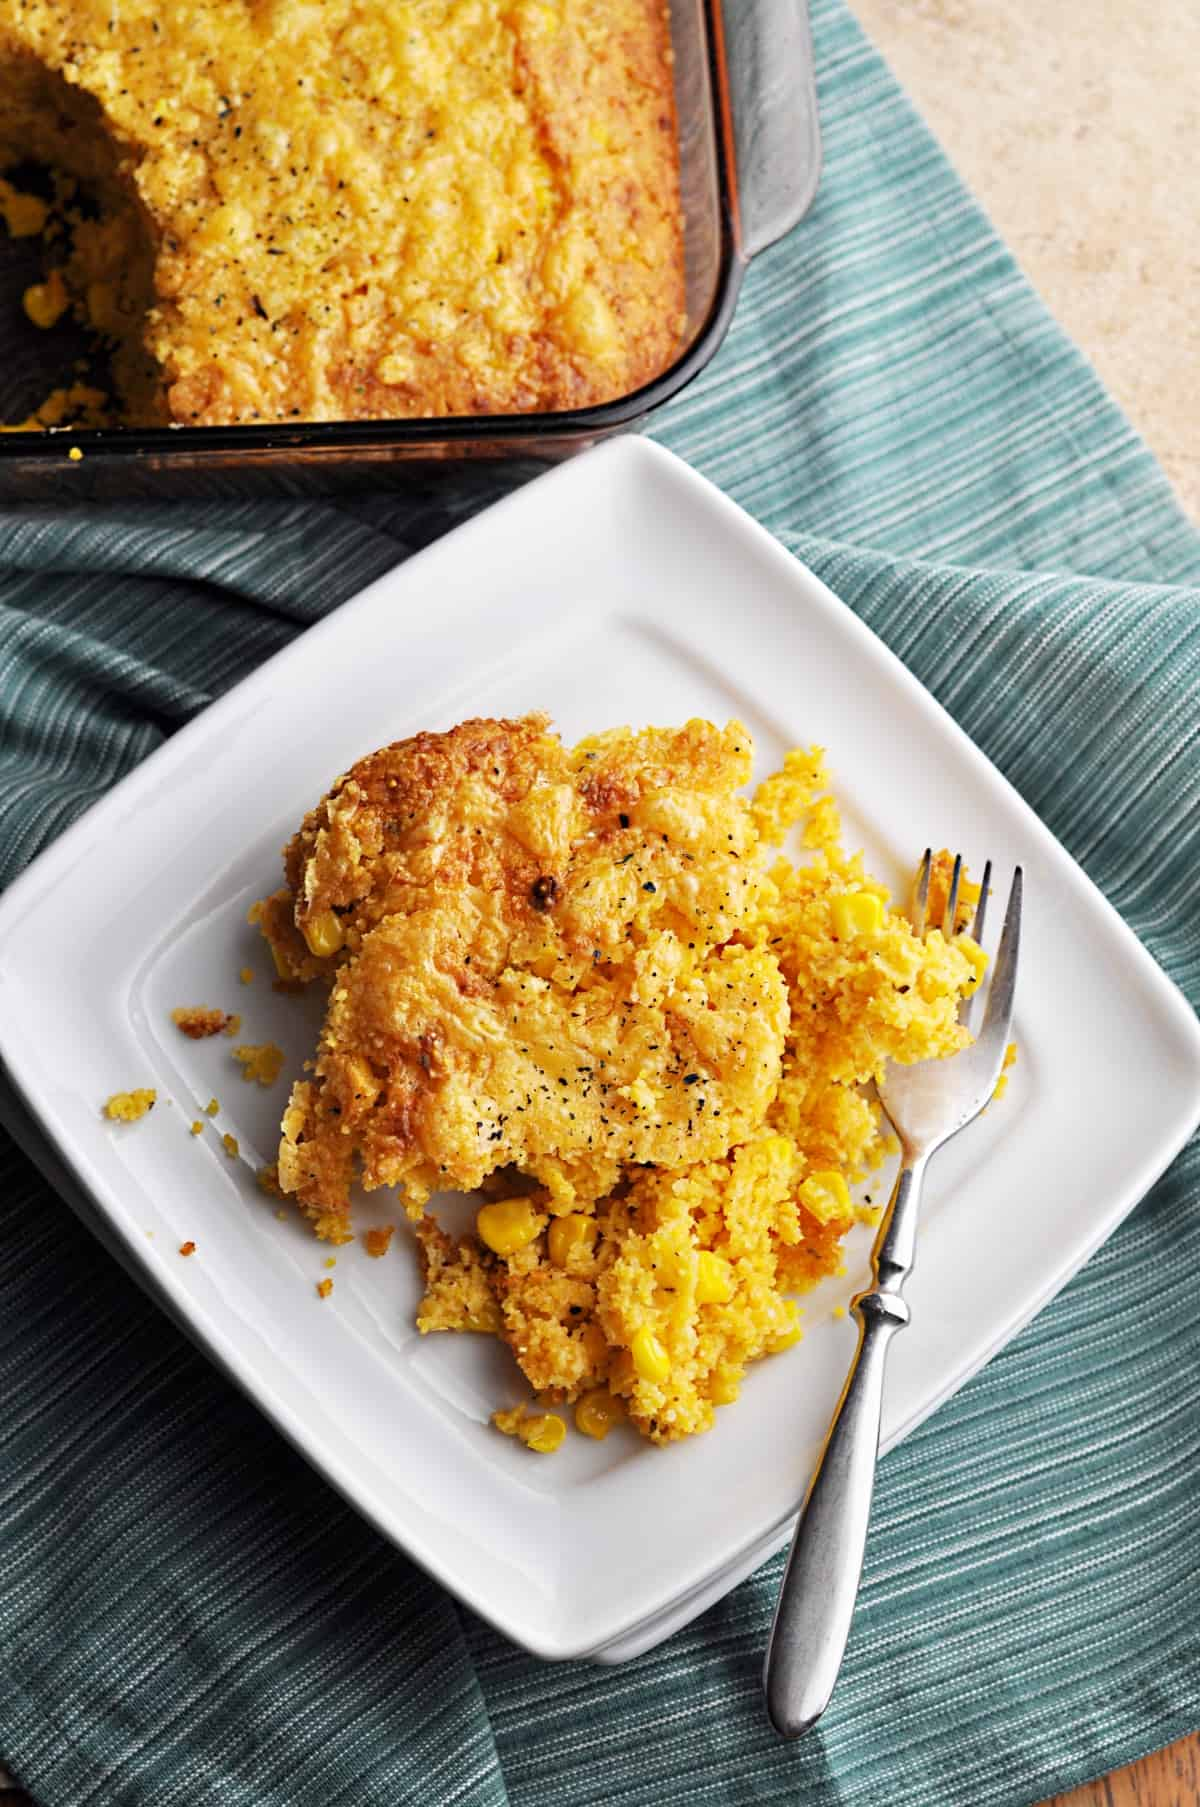 Sweetcorn casserole on white plate with fork